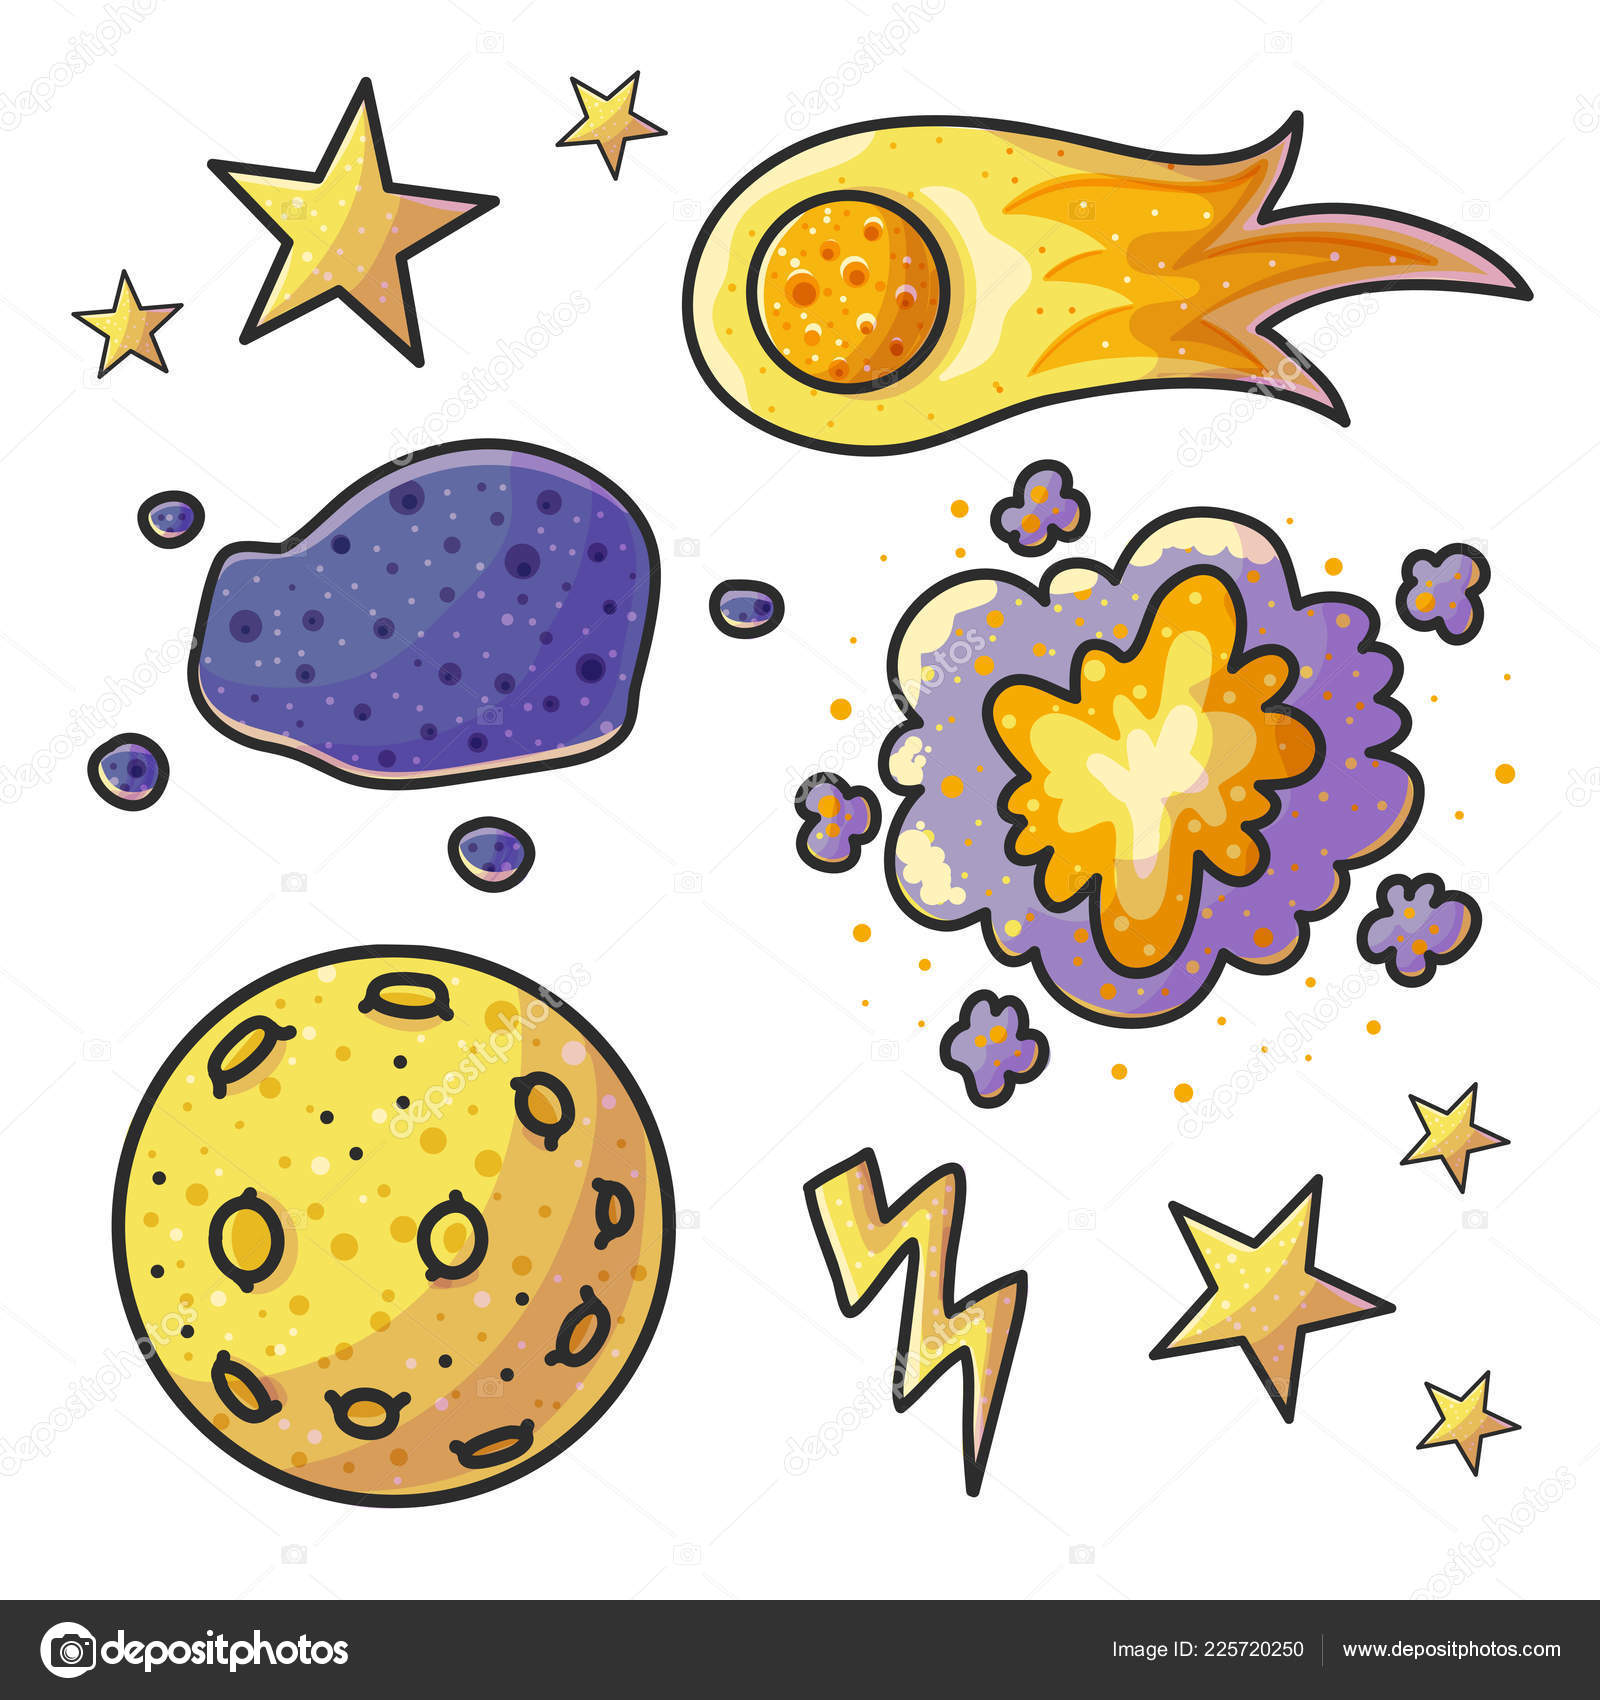 Space Hand Drawn Color Illustrations Set Doodle Astronomical